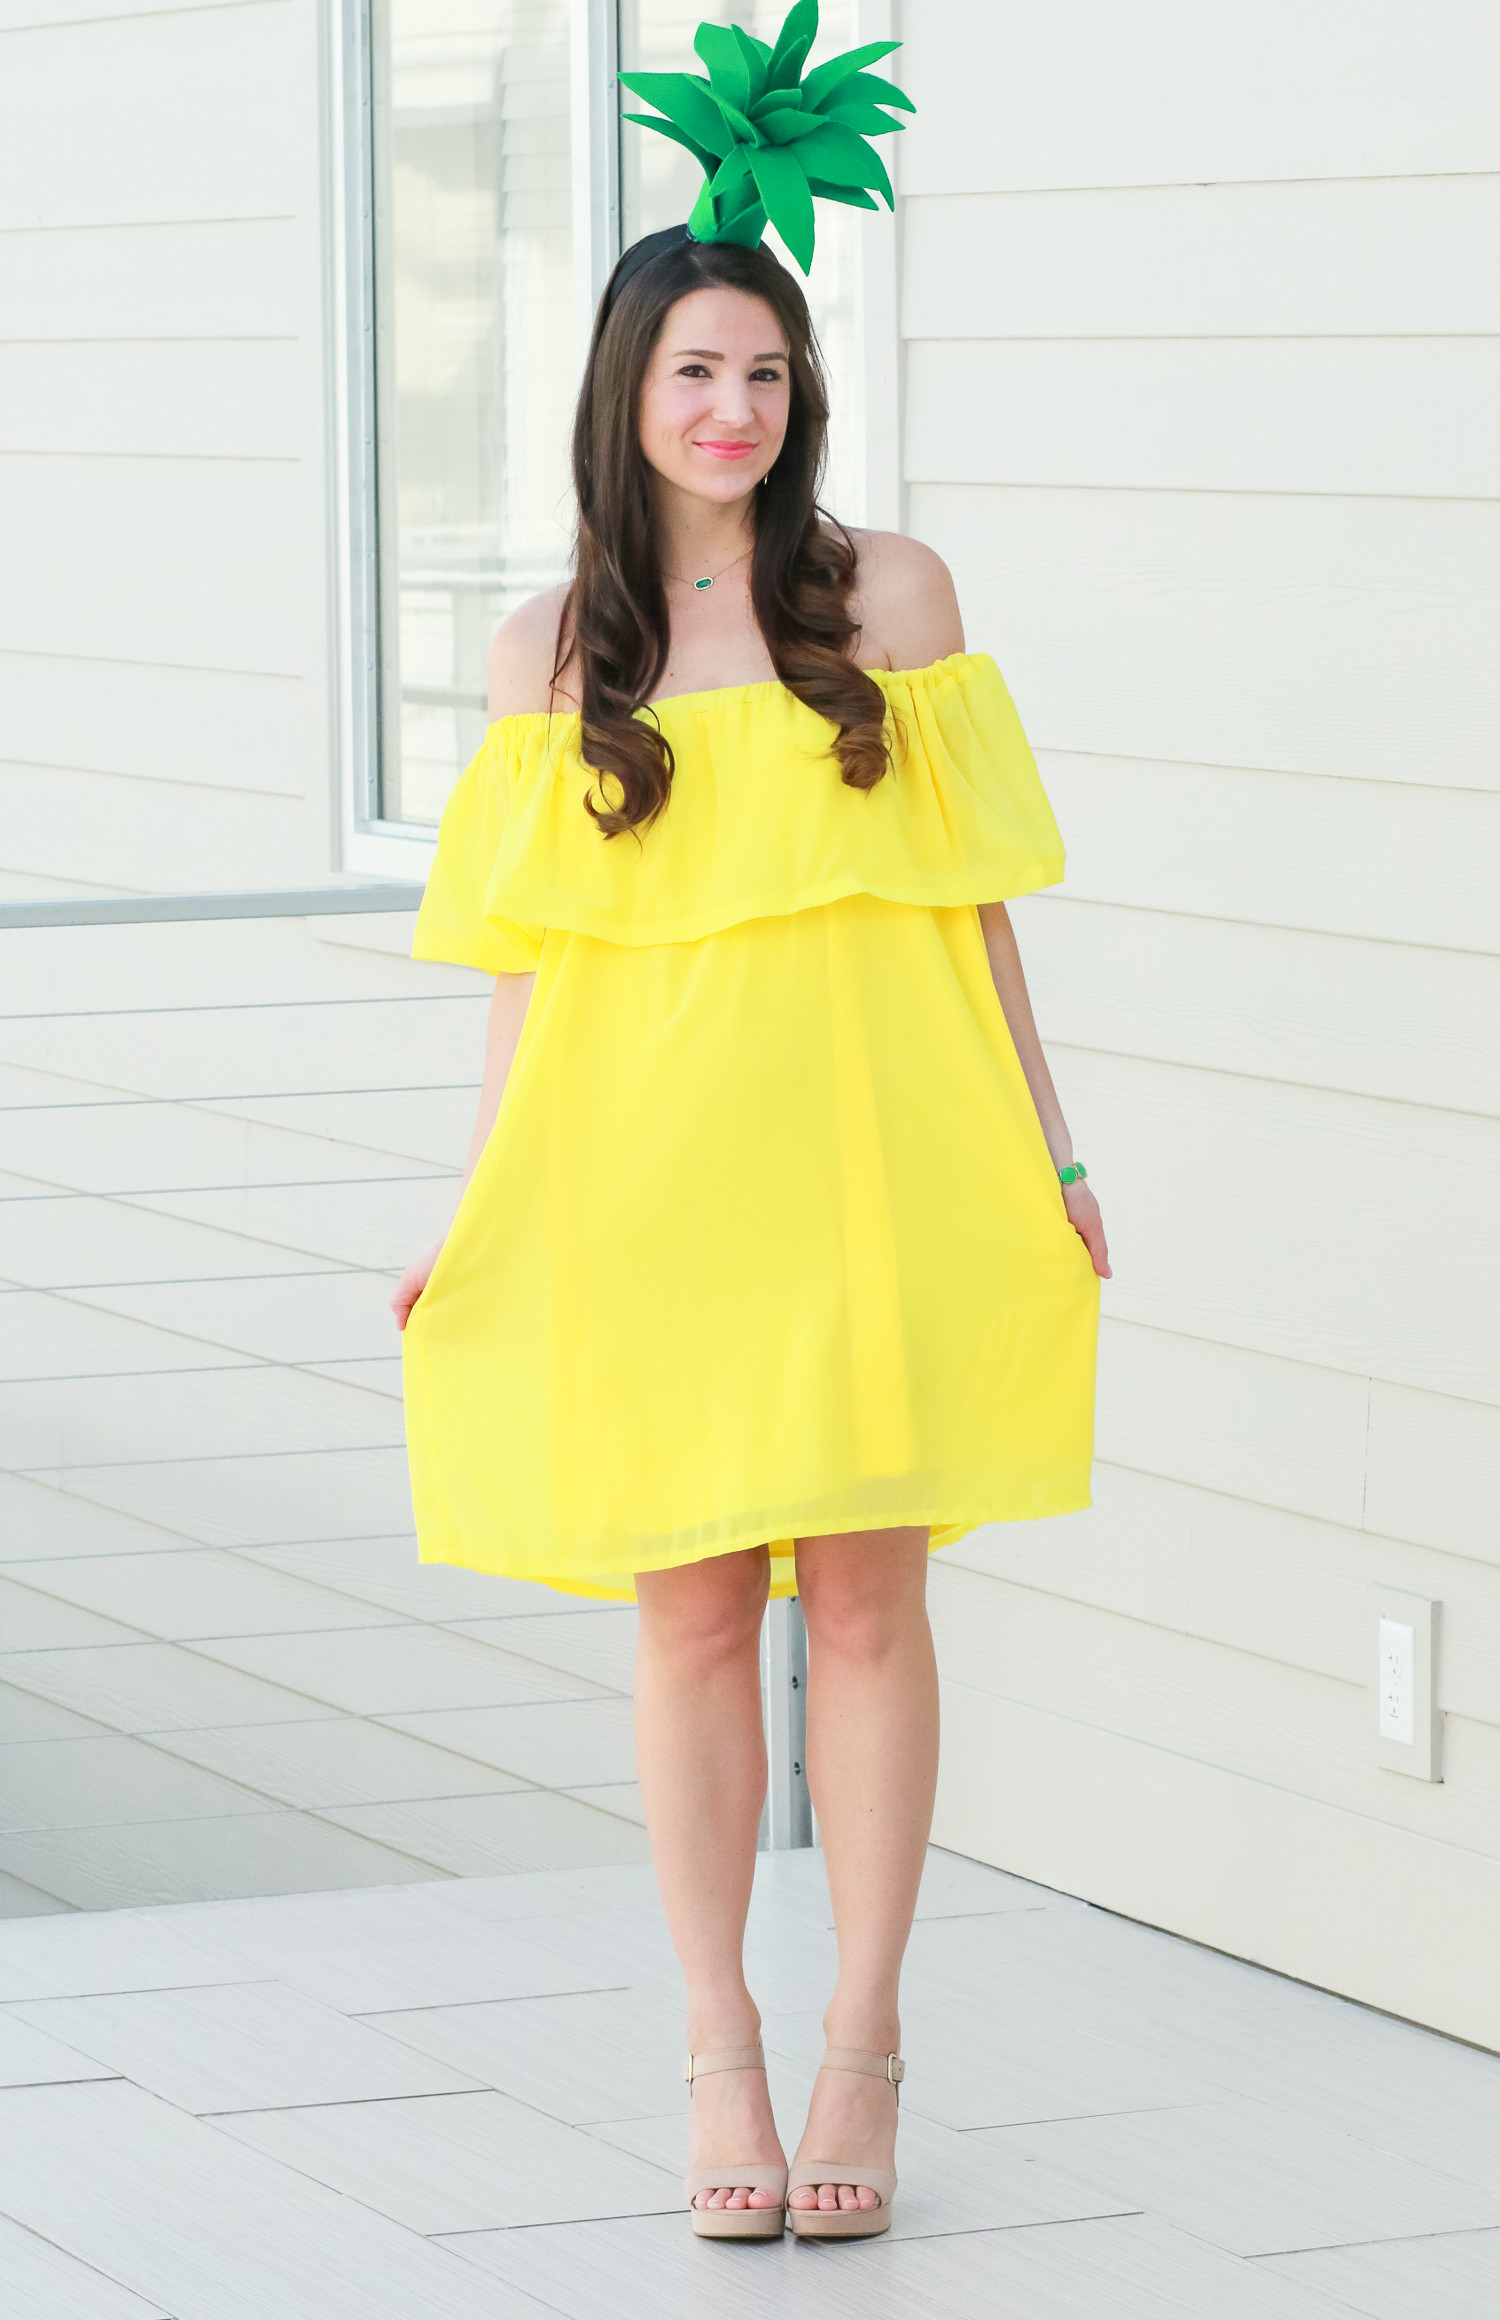 Best ideas about Simple DIY Halloween Costumes . Save or Pin DIY Pineapple Costume That Costs Less Than $3 to Make Now.